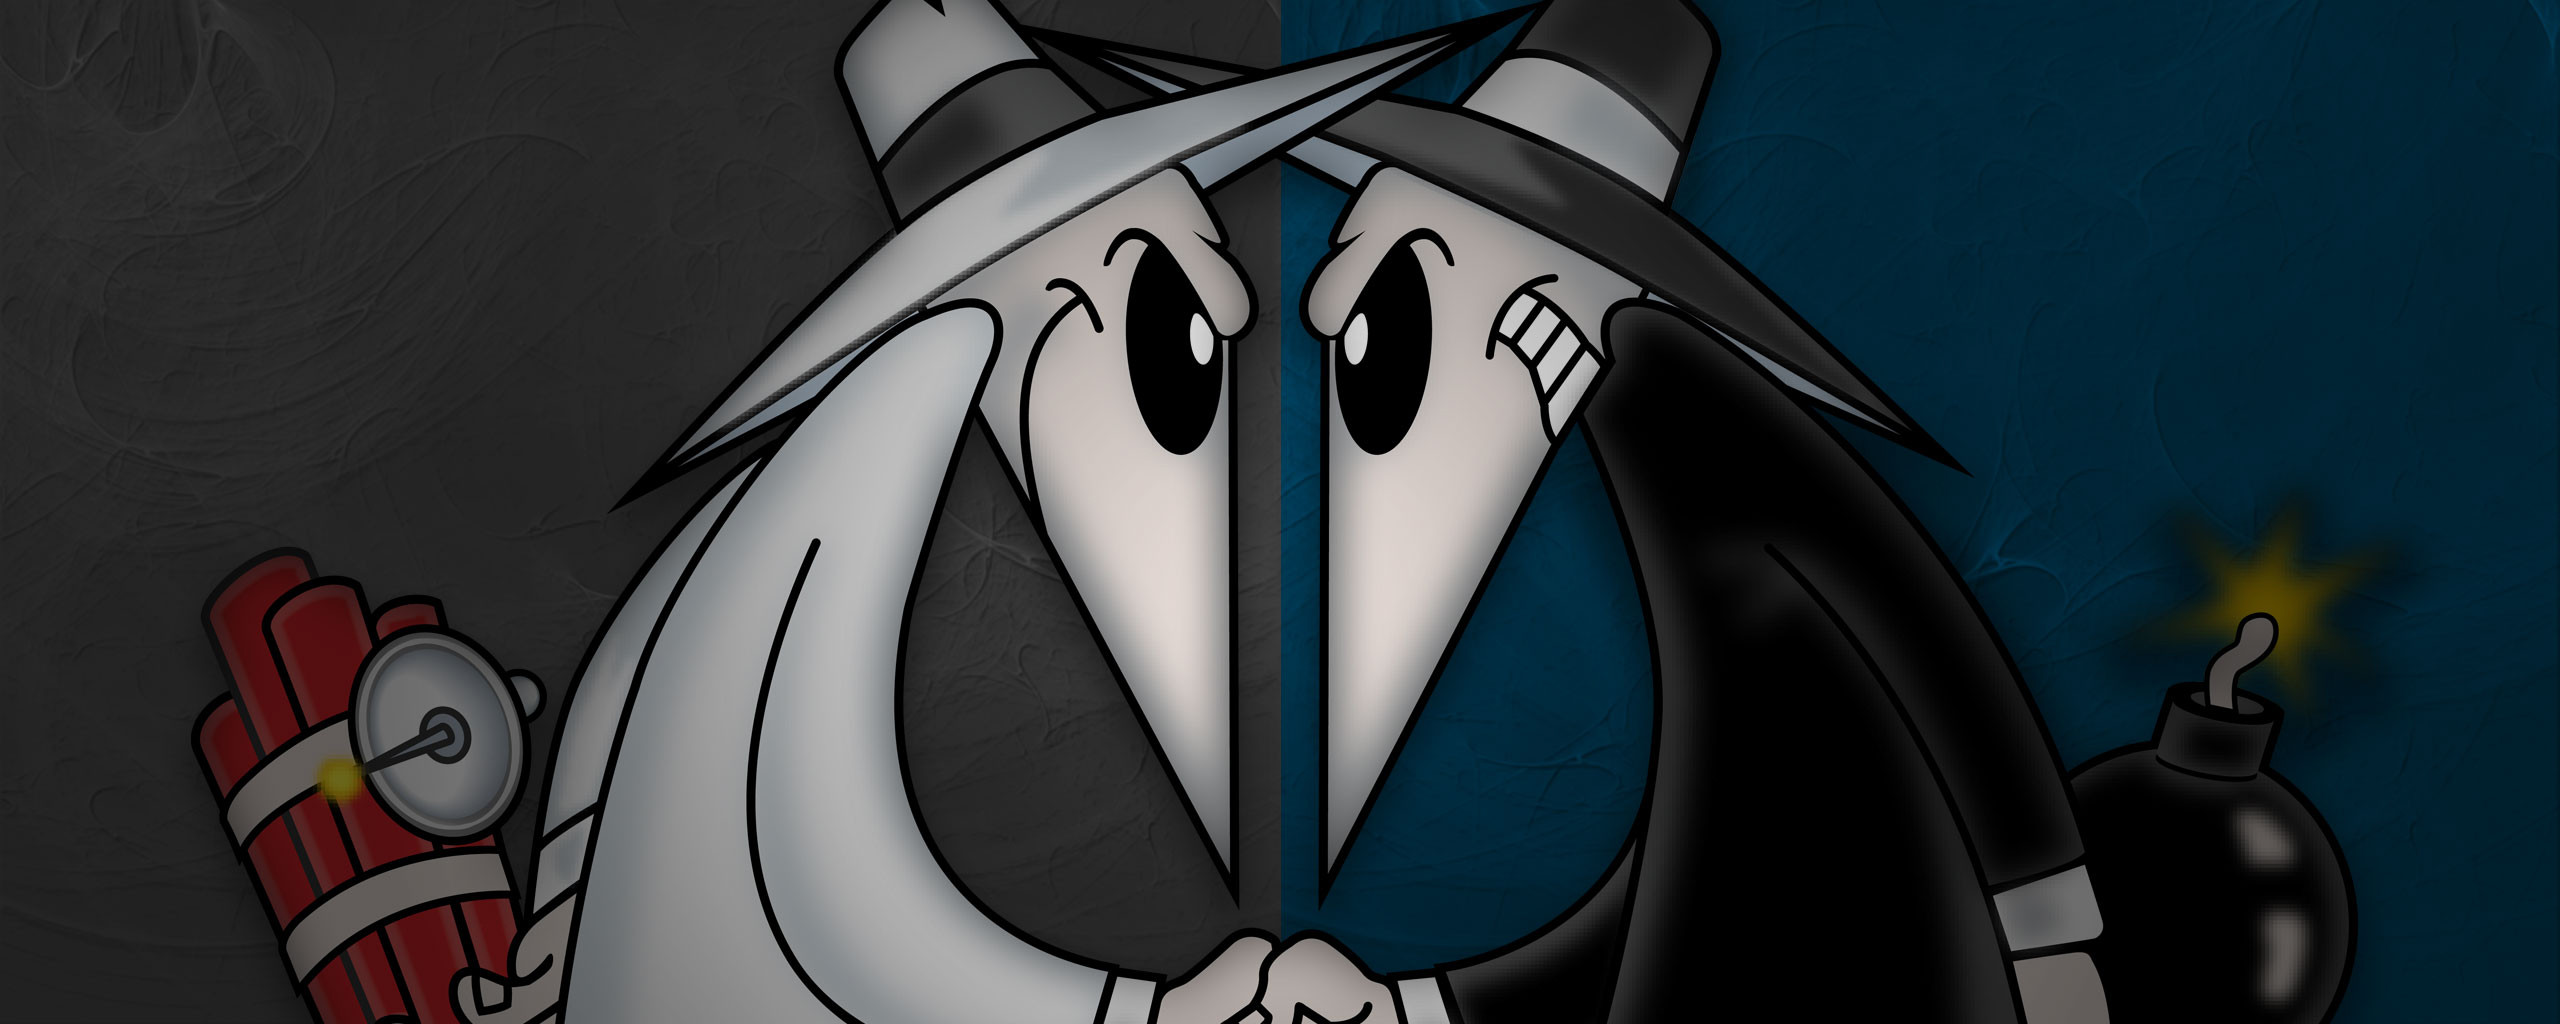 Portal 2 dual screen wallpaper gaming - 1 Spy Vs Spy Hd Wallpapers Backgrounds Wallpaper Abyss